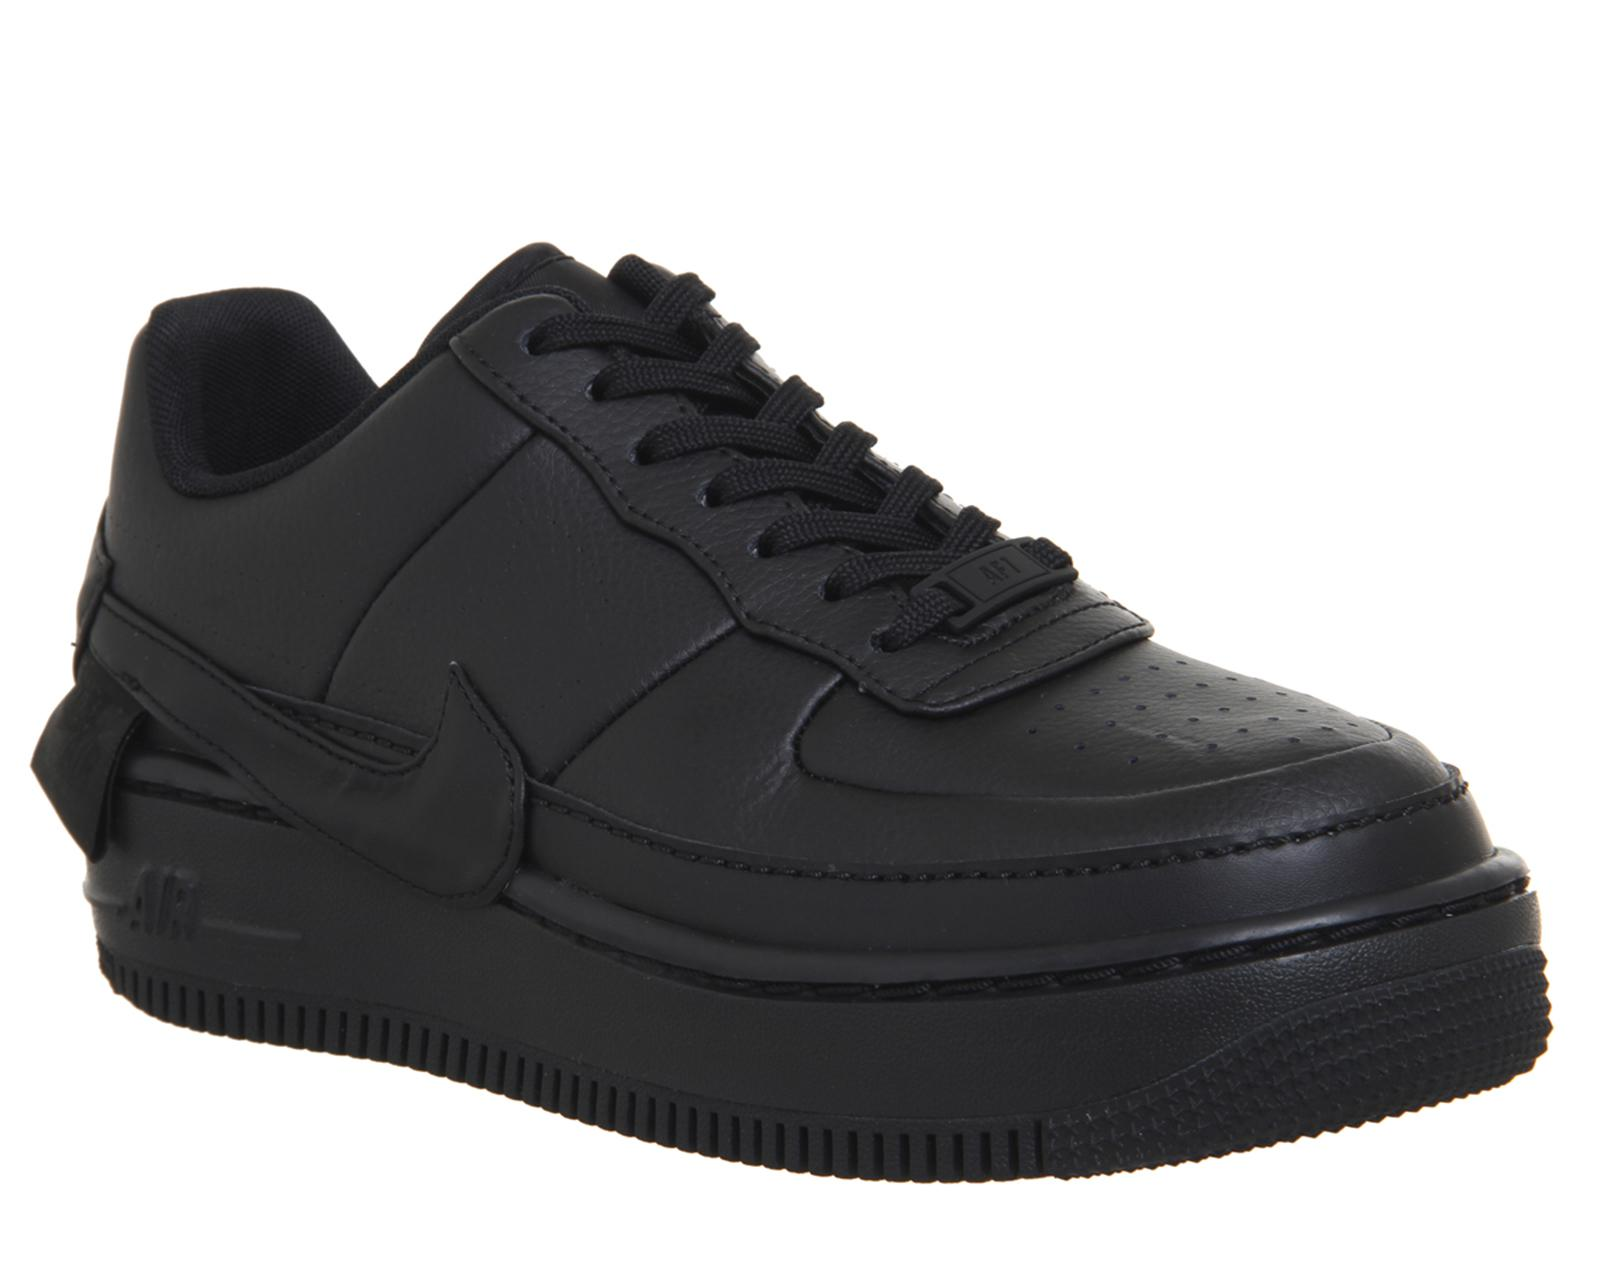 Lyst - Nike Af1 Jester Xx Trainer in Black fbe6374f2